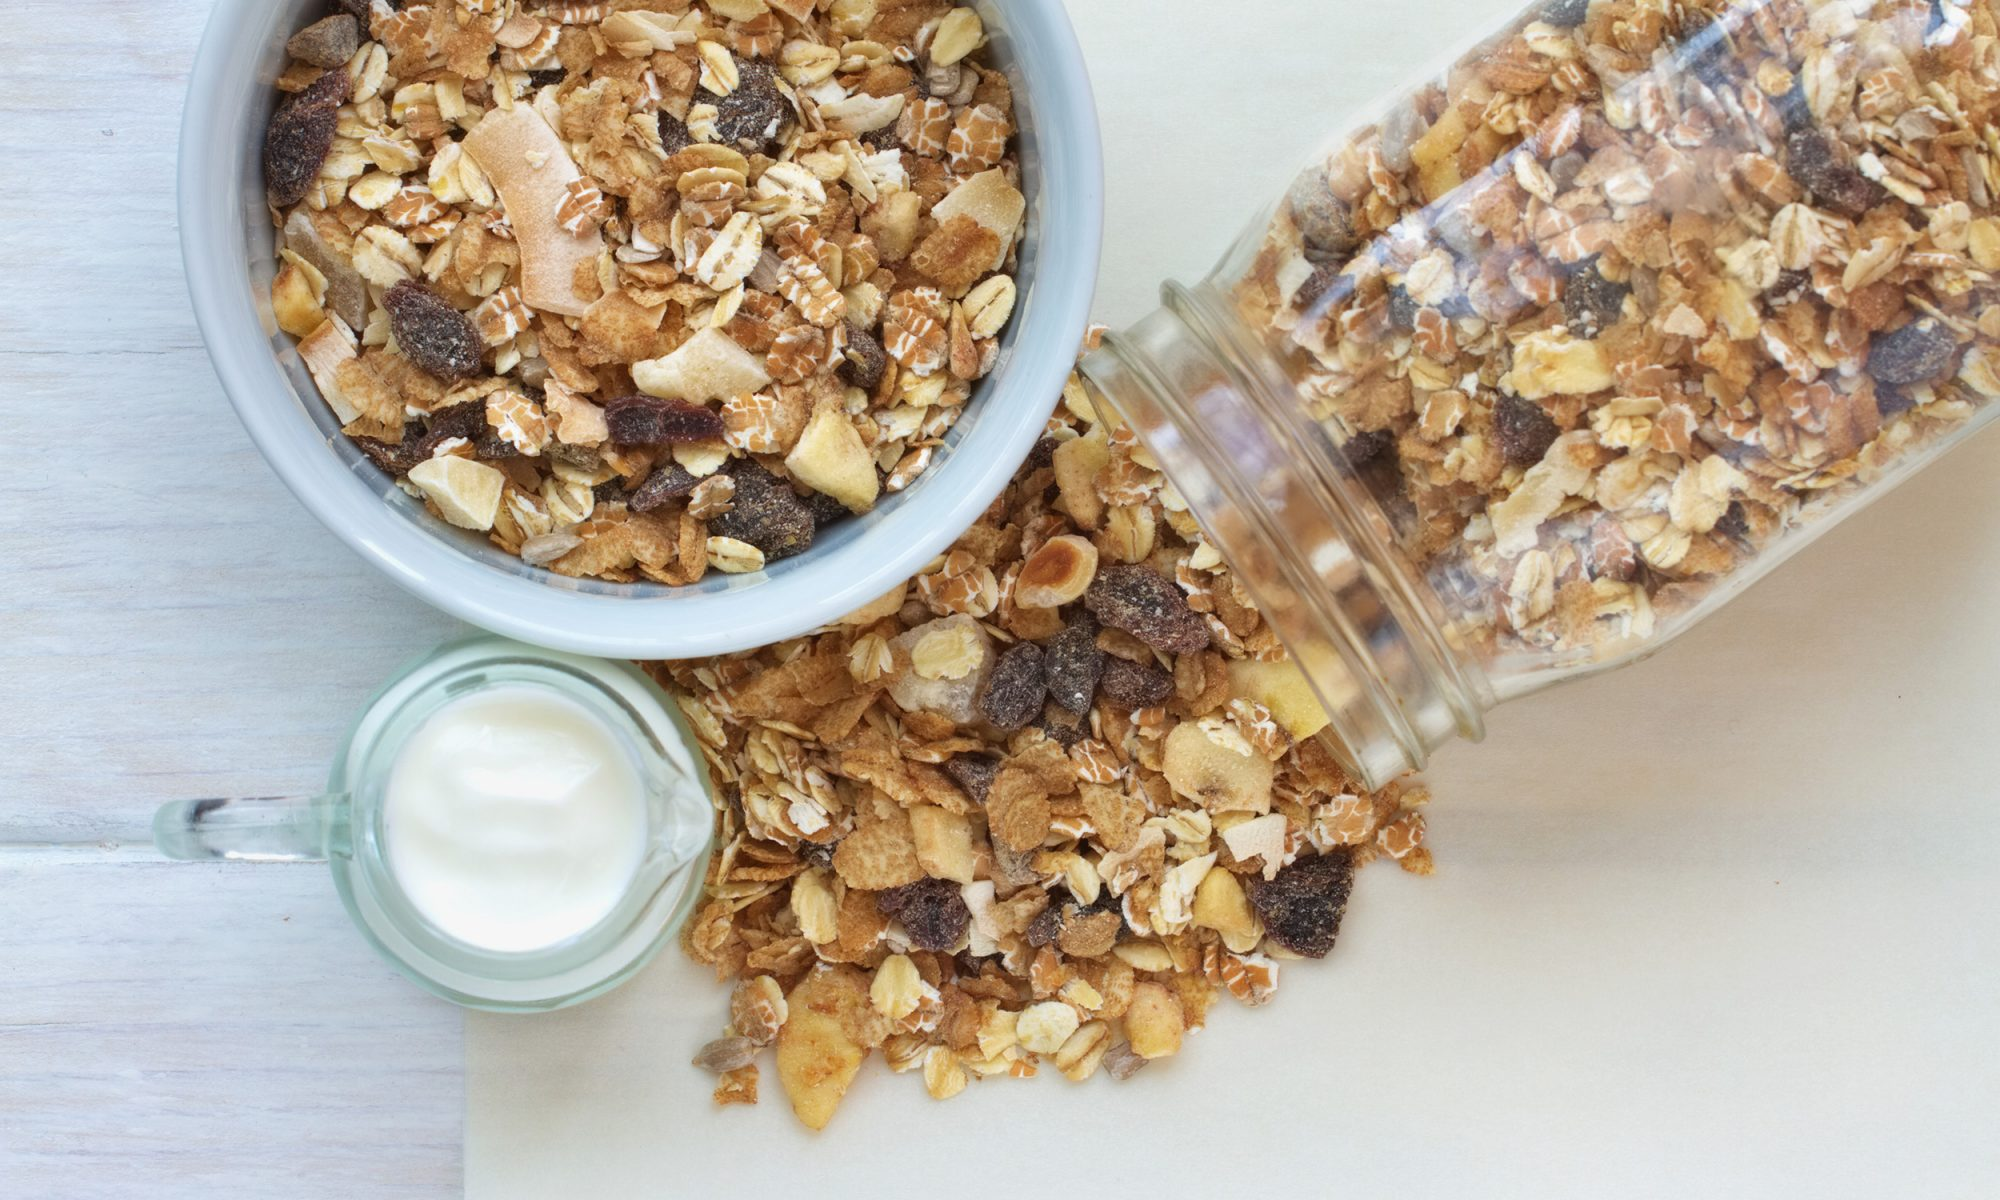 EC: Sea Salt Will Make Your Yogurt and Granola Seem Fancy